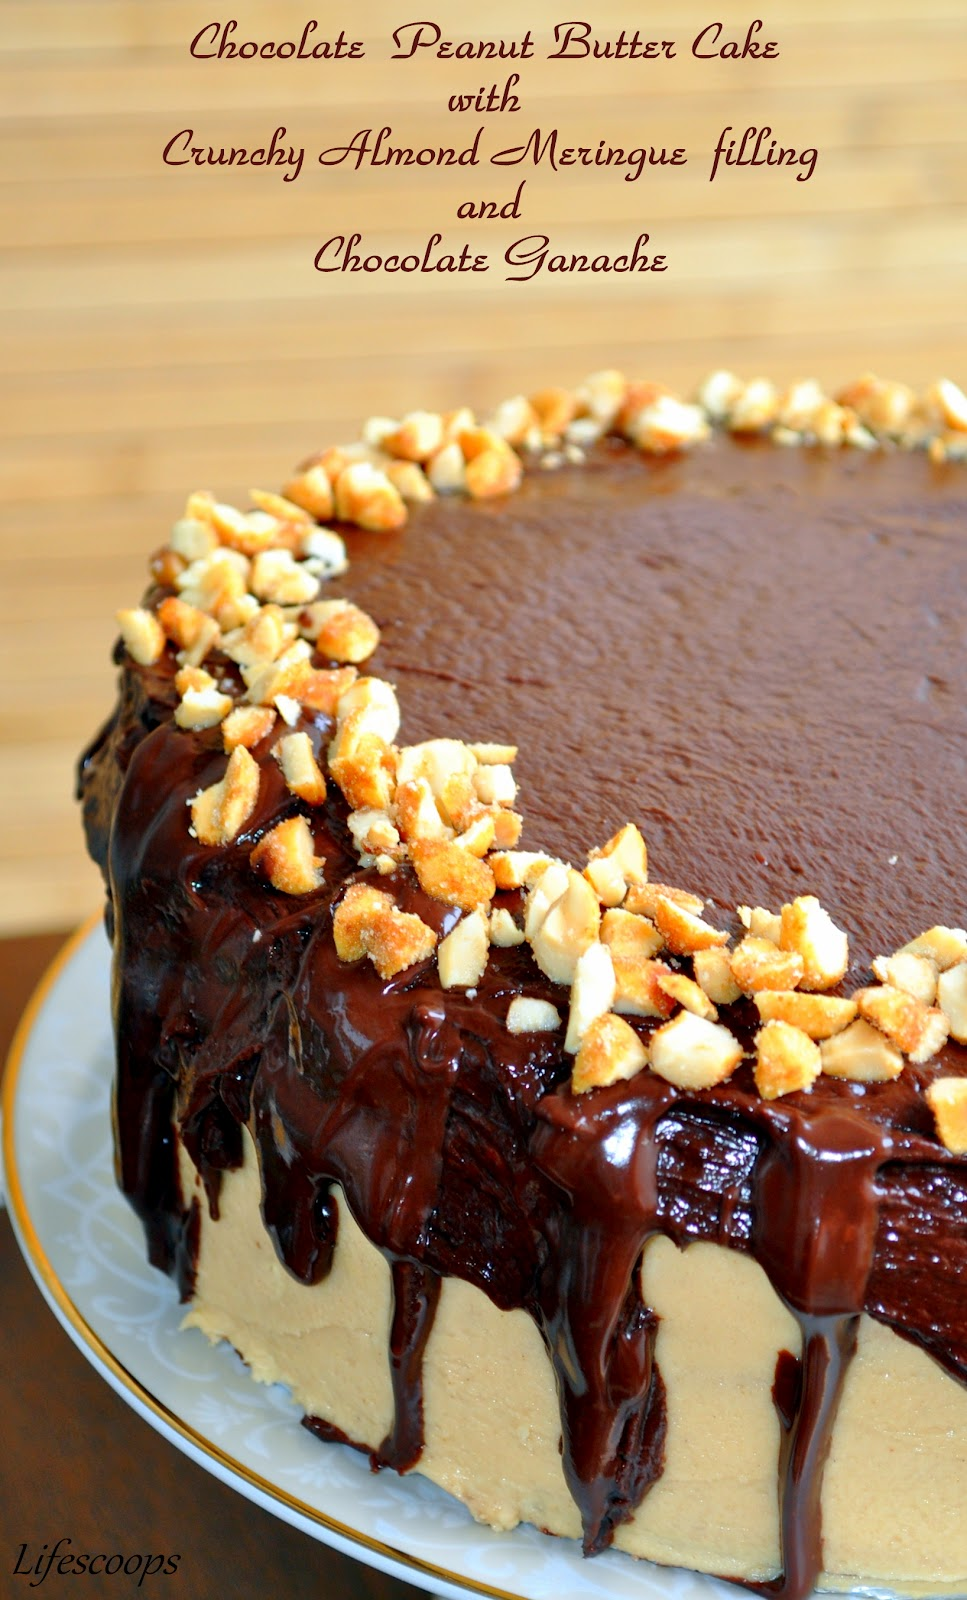 Here Is A Chocolate Peanut Butter Cake With Almond Meringue Filling And Ganache Now Who Doesnt Want To Take An Intense Bite Into That